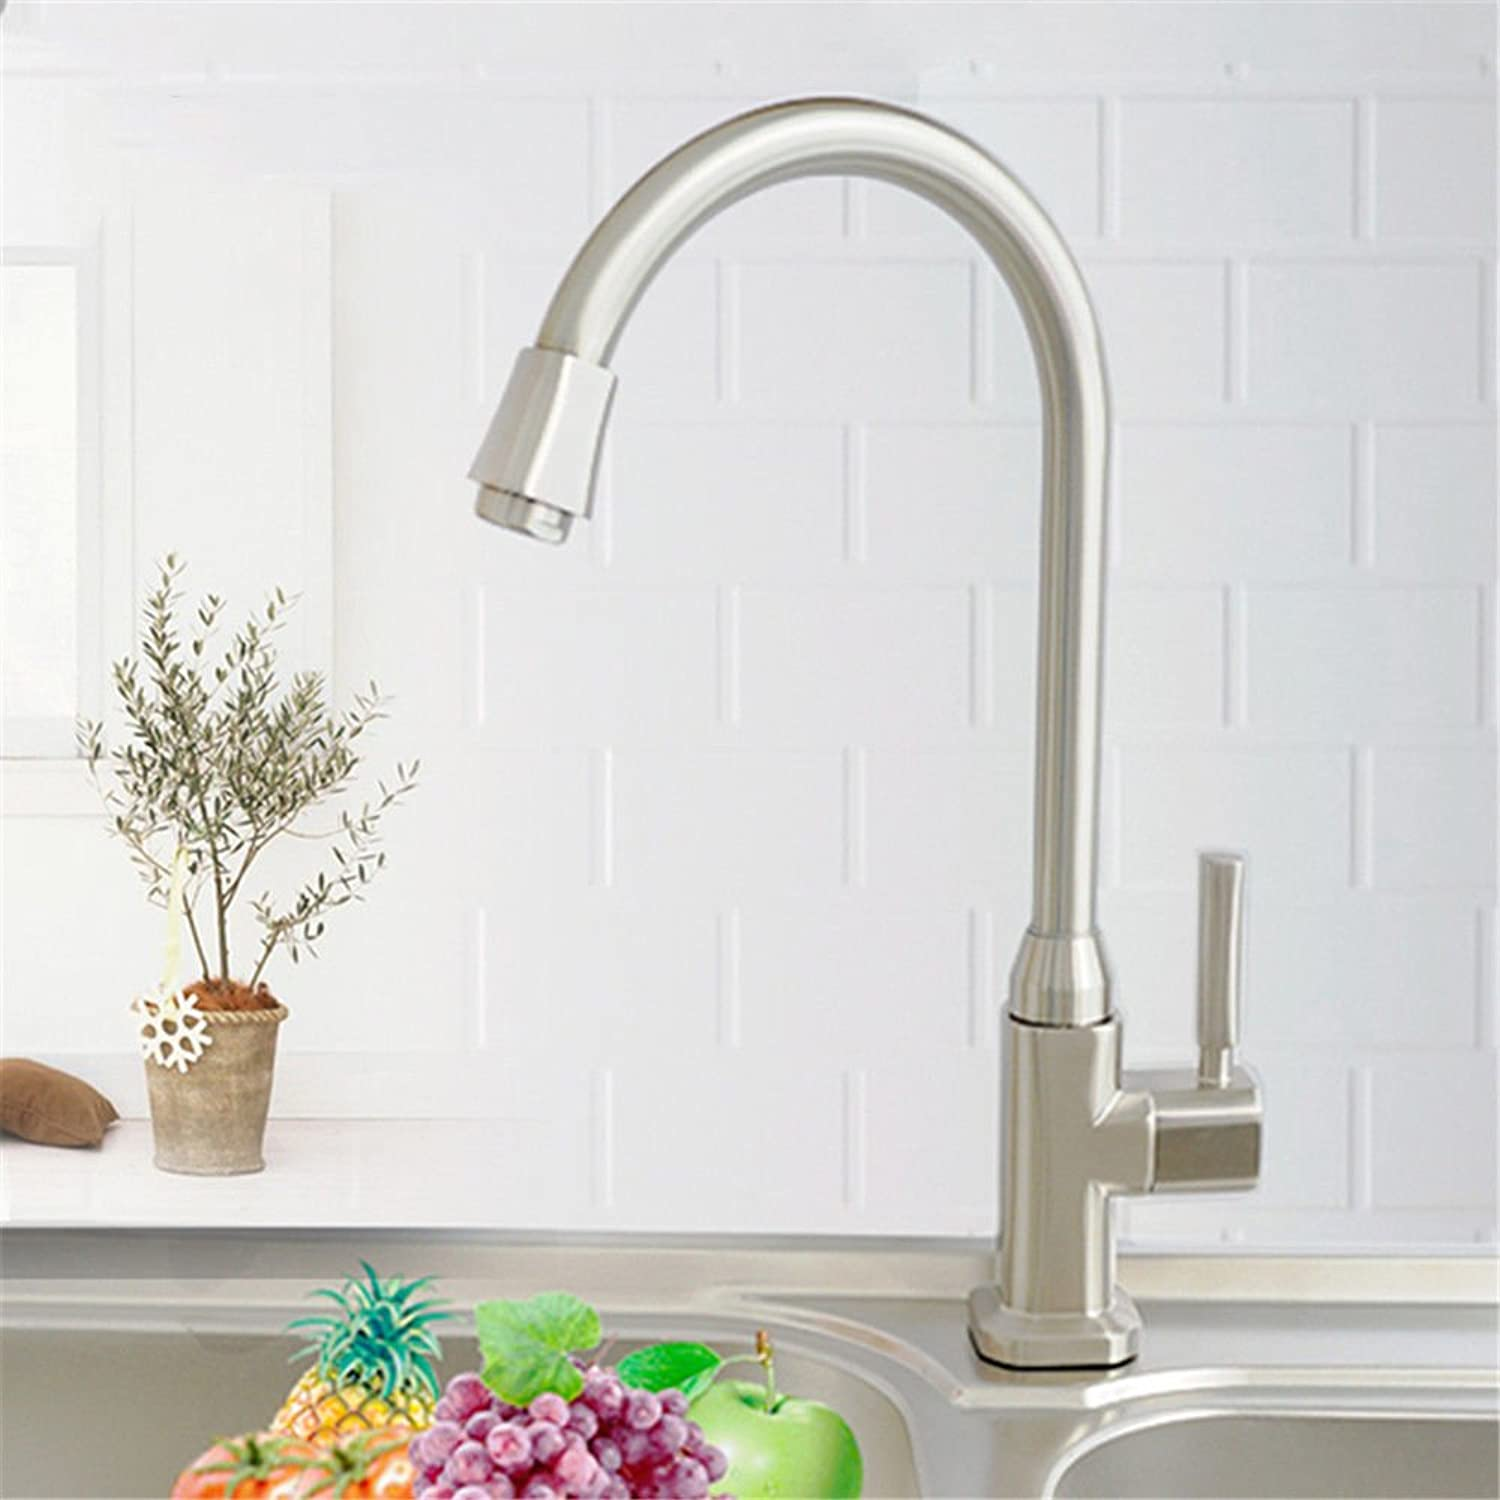 ETERNAL QUALITY Bathroom Sink Basin Tap Brass Mixer Tap Washroom Mixer Faucet The Kitchen single cold tap full copper spool brushed to redate the high bend Faucet Kitchen